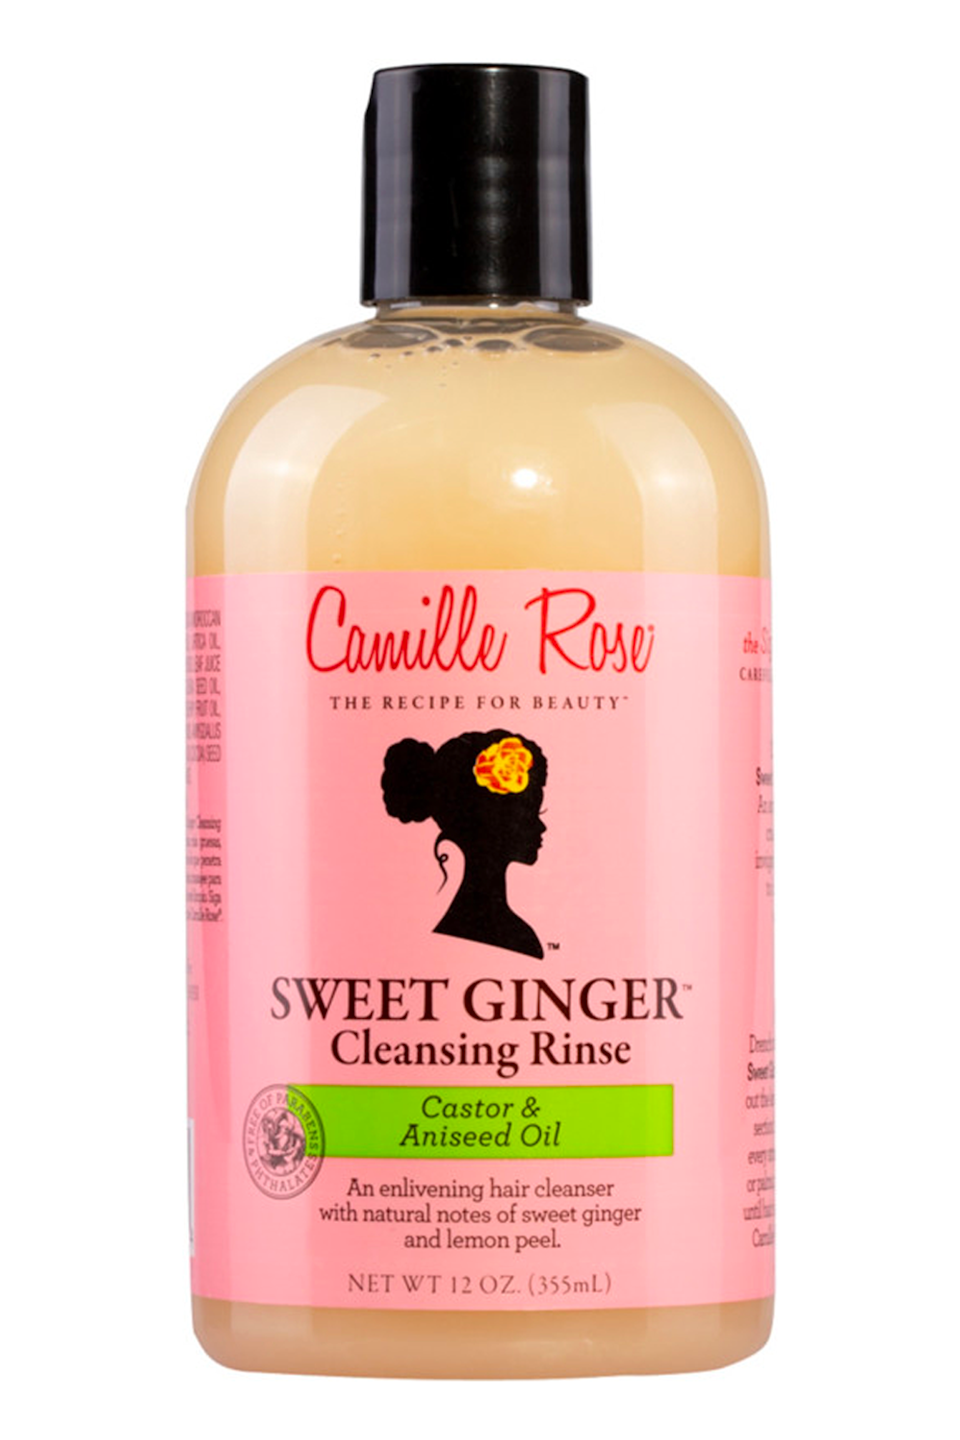 """<p><strong>Camille Rose</strong></p><p>ulta.com</p><p><strong>$11.99</strong></p><p><a href=""""https://go.redirectingat.com?id=74968X1596630&url=https%3A%2F%2Fwww.ulta.com%2Fp%2Fsweet-ginger-cleansing-rinse-pimprod2023978&sref=https%3A%2F%2Fwww.cosmopolitan.com%2Fstyle-beauty%2Fbeauty%2Fg20716291%2Fbest-clarifying-shampoo%2F"""" rel=""""nofollow noopener"""" target=""""_blank"""" data-ylk=""""slk:Shop Now"""" class=""""link rapid-noclick-resp"""">Shop Now</a></p><p>You know those days when your curls are feeling a little weighed down, dull, or greasy, and you want a <em>touch </em>more cleansing powers than usual? That's when you reach for this <a href=""""https://www.cosmopolitan.com/style-beauty/beauty/g12230240/best-sulfate-free-shampoo/"""" rel=""""nofollow noopener"""" target=""""_blank"""" data-ylk=""""slk:sulfate-free shampoo"""" class=""""link rapid-noclick-resp"""">sulfate-free shampoo</a>, which <strong>has just enough surfactants to make your hair feel <em>clean </em>clean (not stripped)</strong>, along with aniseed and castor oils to keep your moisture balance in check.</p>"""